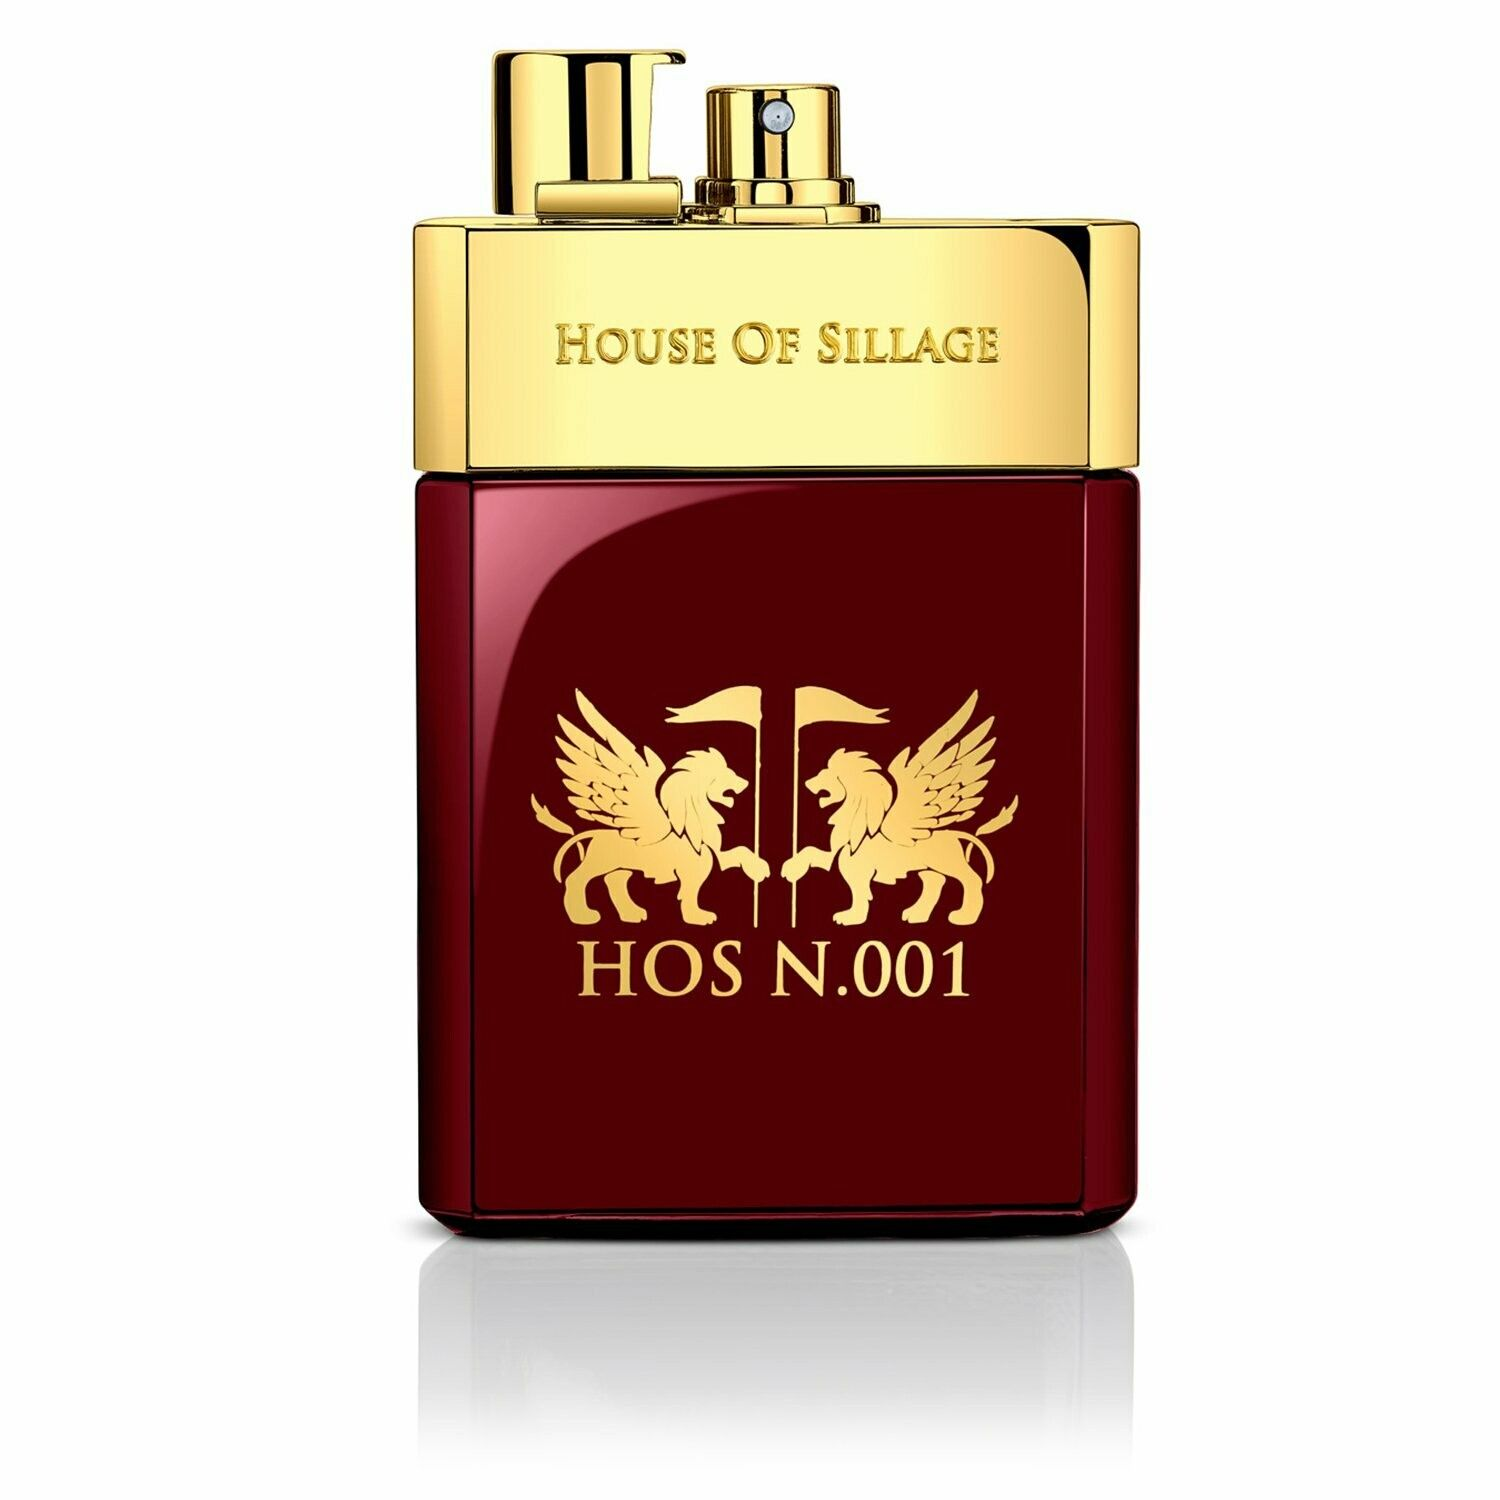 HOS N.001 (Men's Collection)